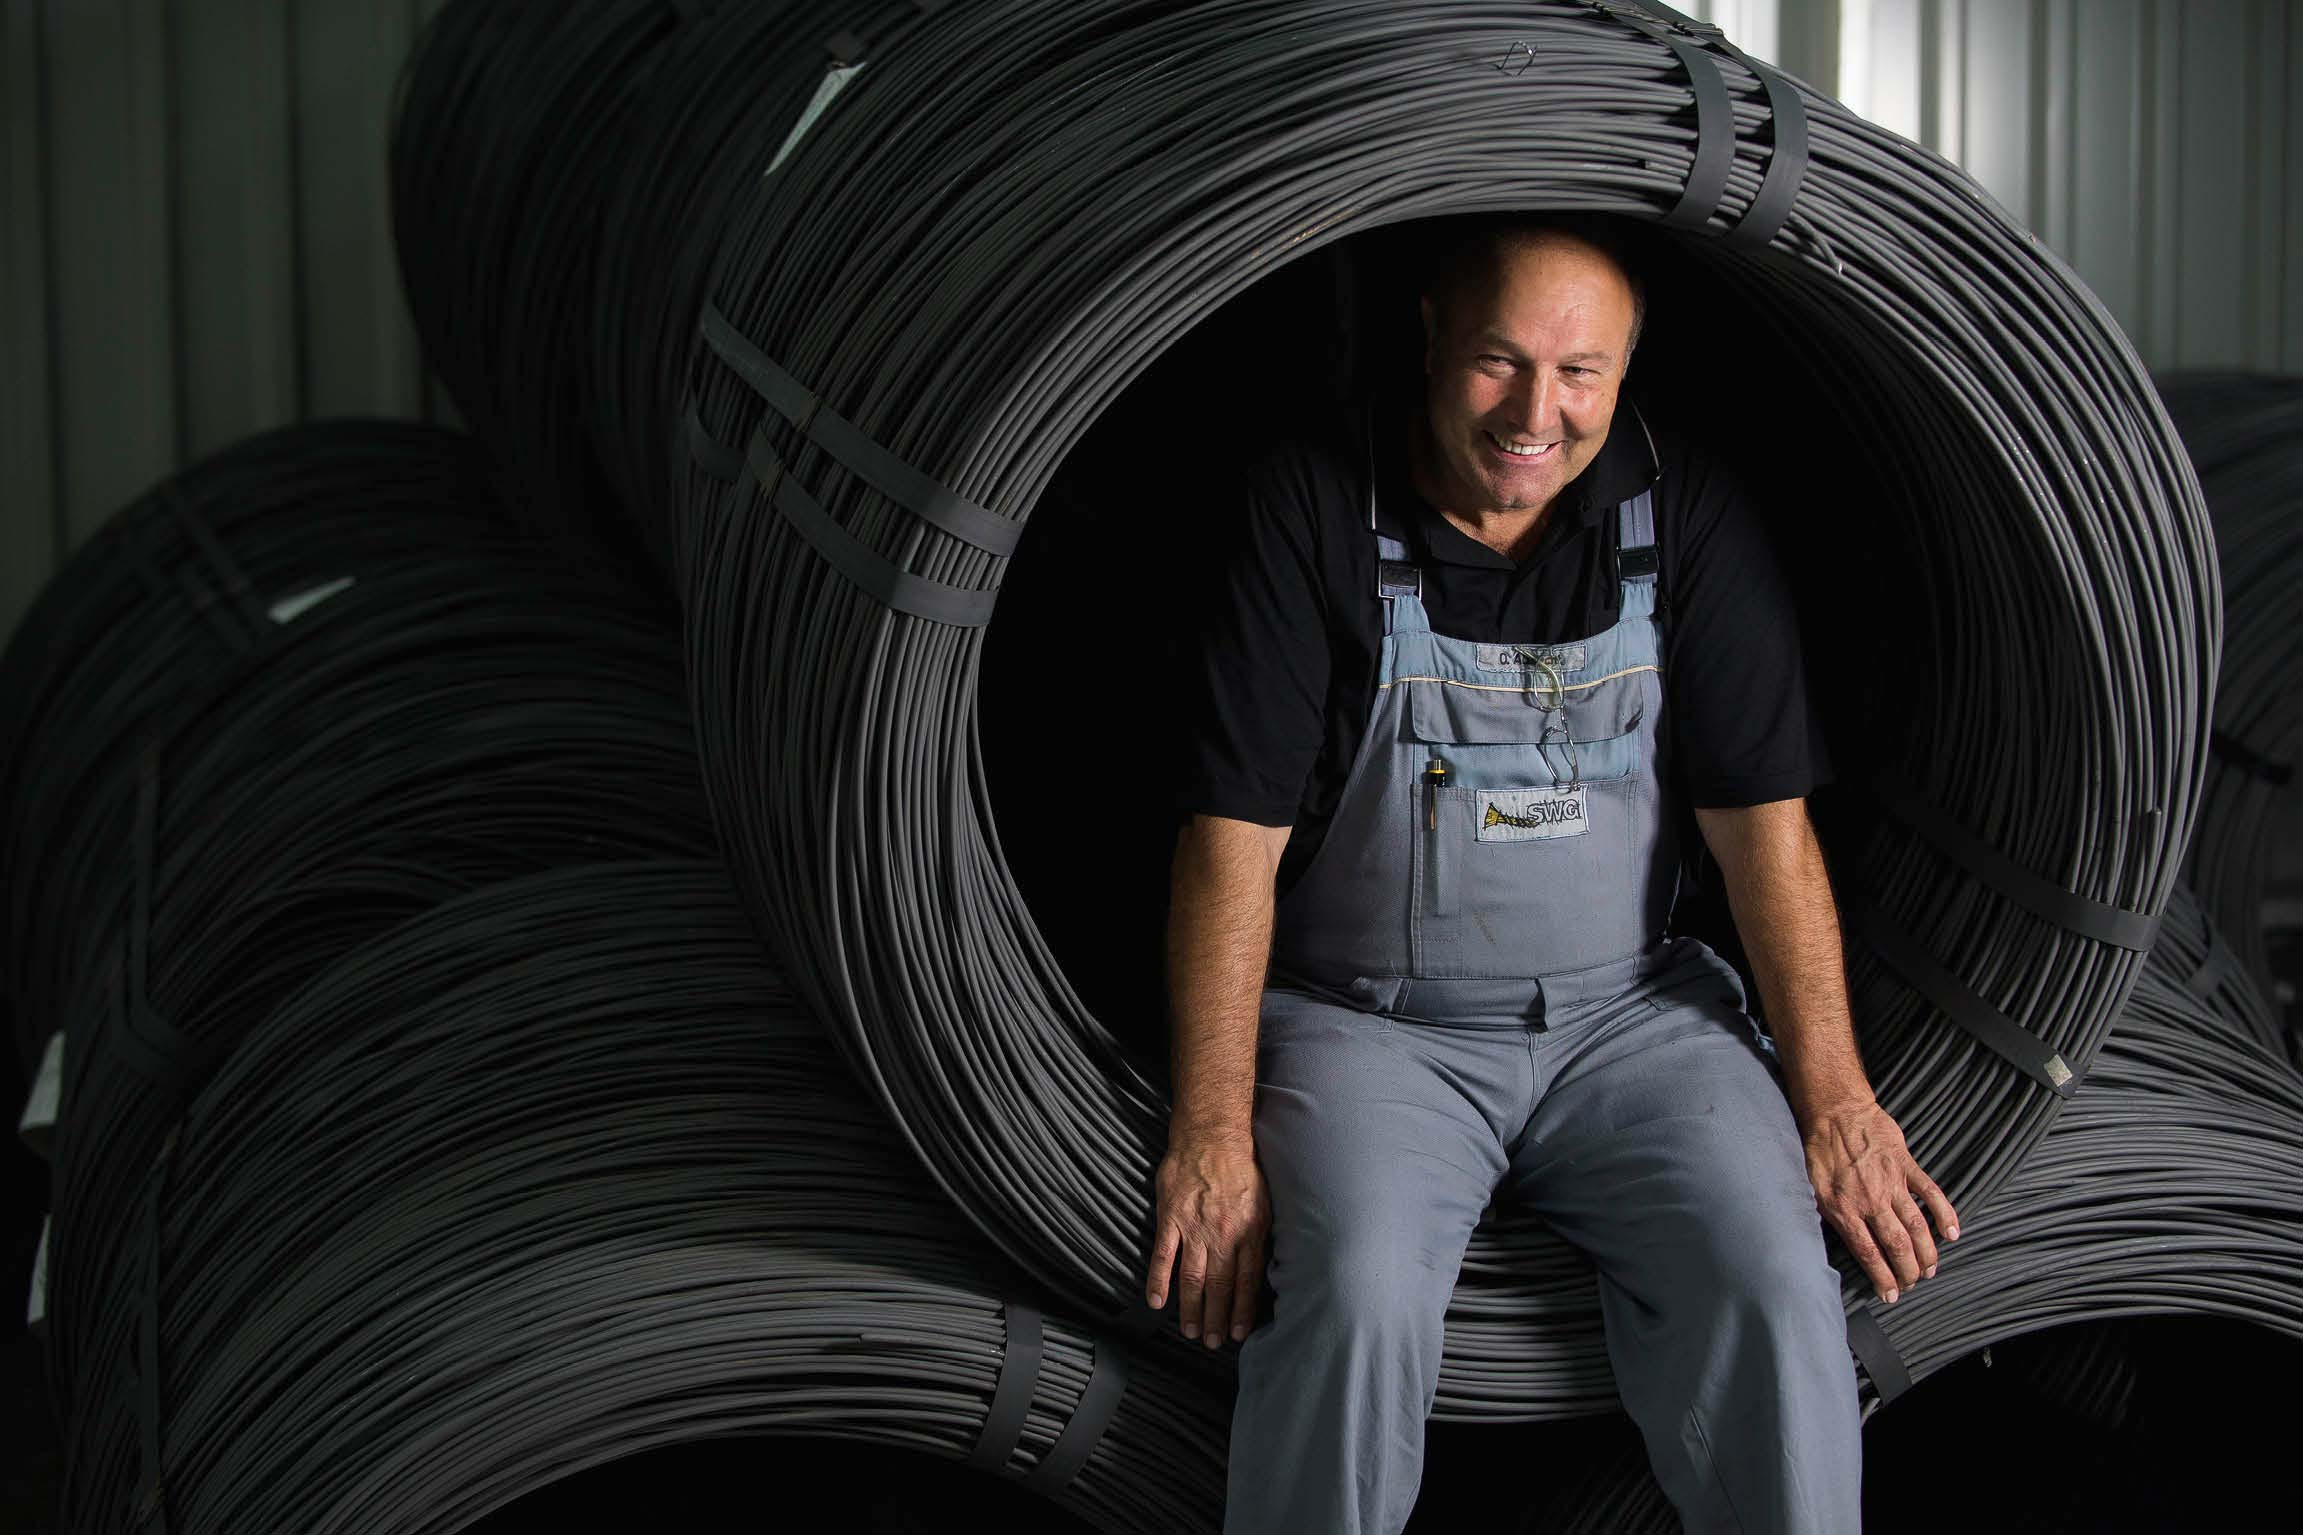 Otto Albrecht, head of department at the pressing shop of SWGSchraubenwerk Gaisbach GmbH, went into retirement at the end of 2017. For more than 40 years, he was responsible for production together with his colleagues, processing hundreds of thousands of kilometers of wire and tens of thousands of metric tons of steel to create billions of screws for our customers to work with: a real lifetime achievement for which we can only say THANK YOU!   SWG processes 700 km of wire every day distributed across wire reels weighing around 1-2 metric tons each. This equates to 1,700 metric tons per month and 1.5 billion to 2 billion screws every year.